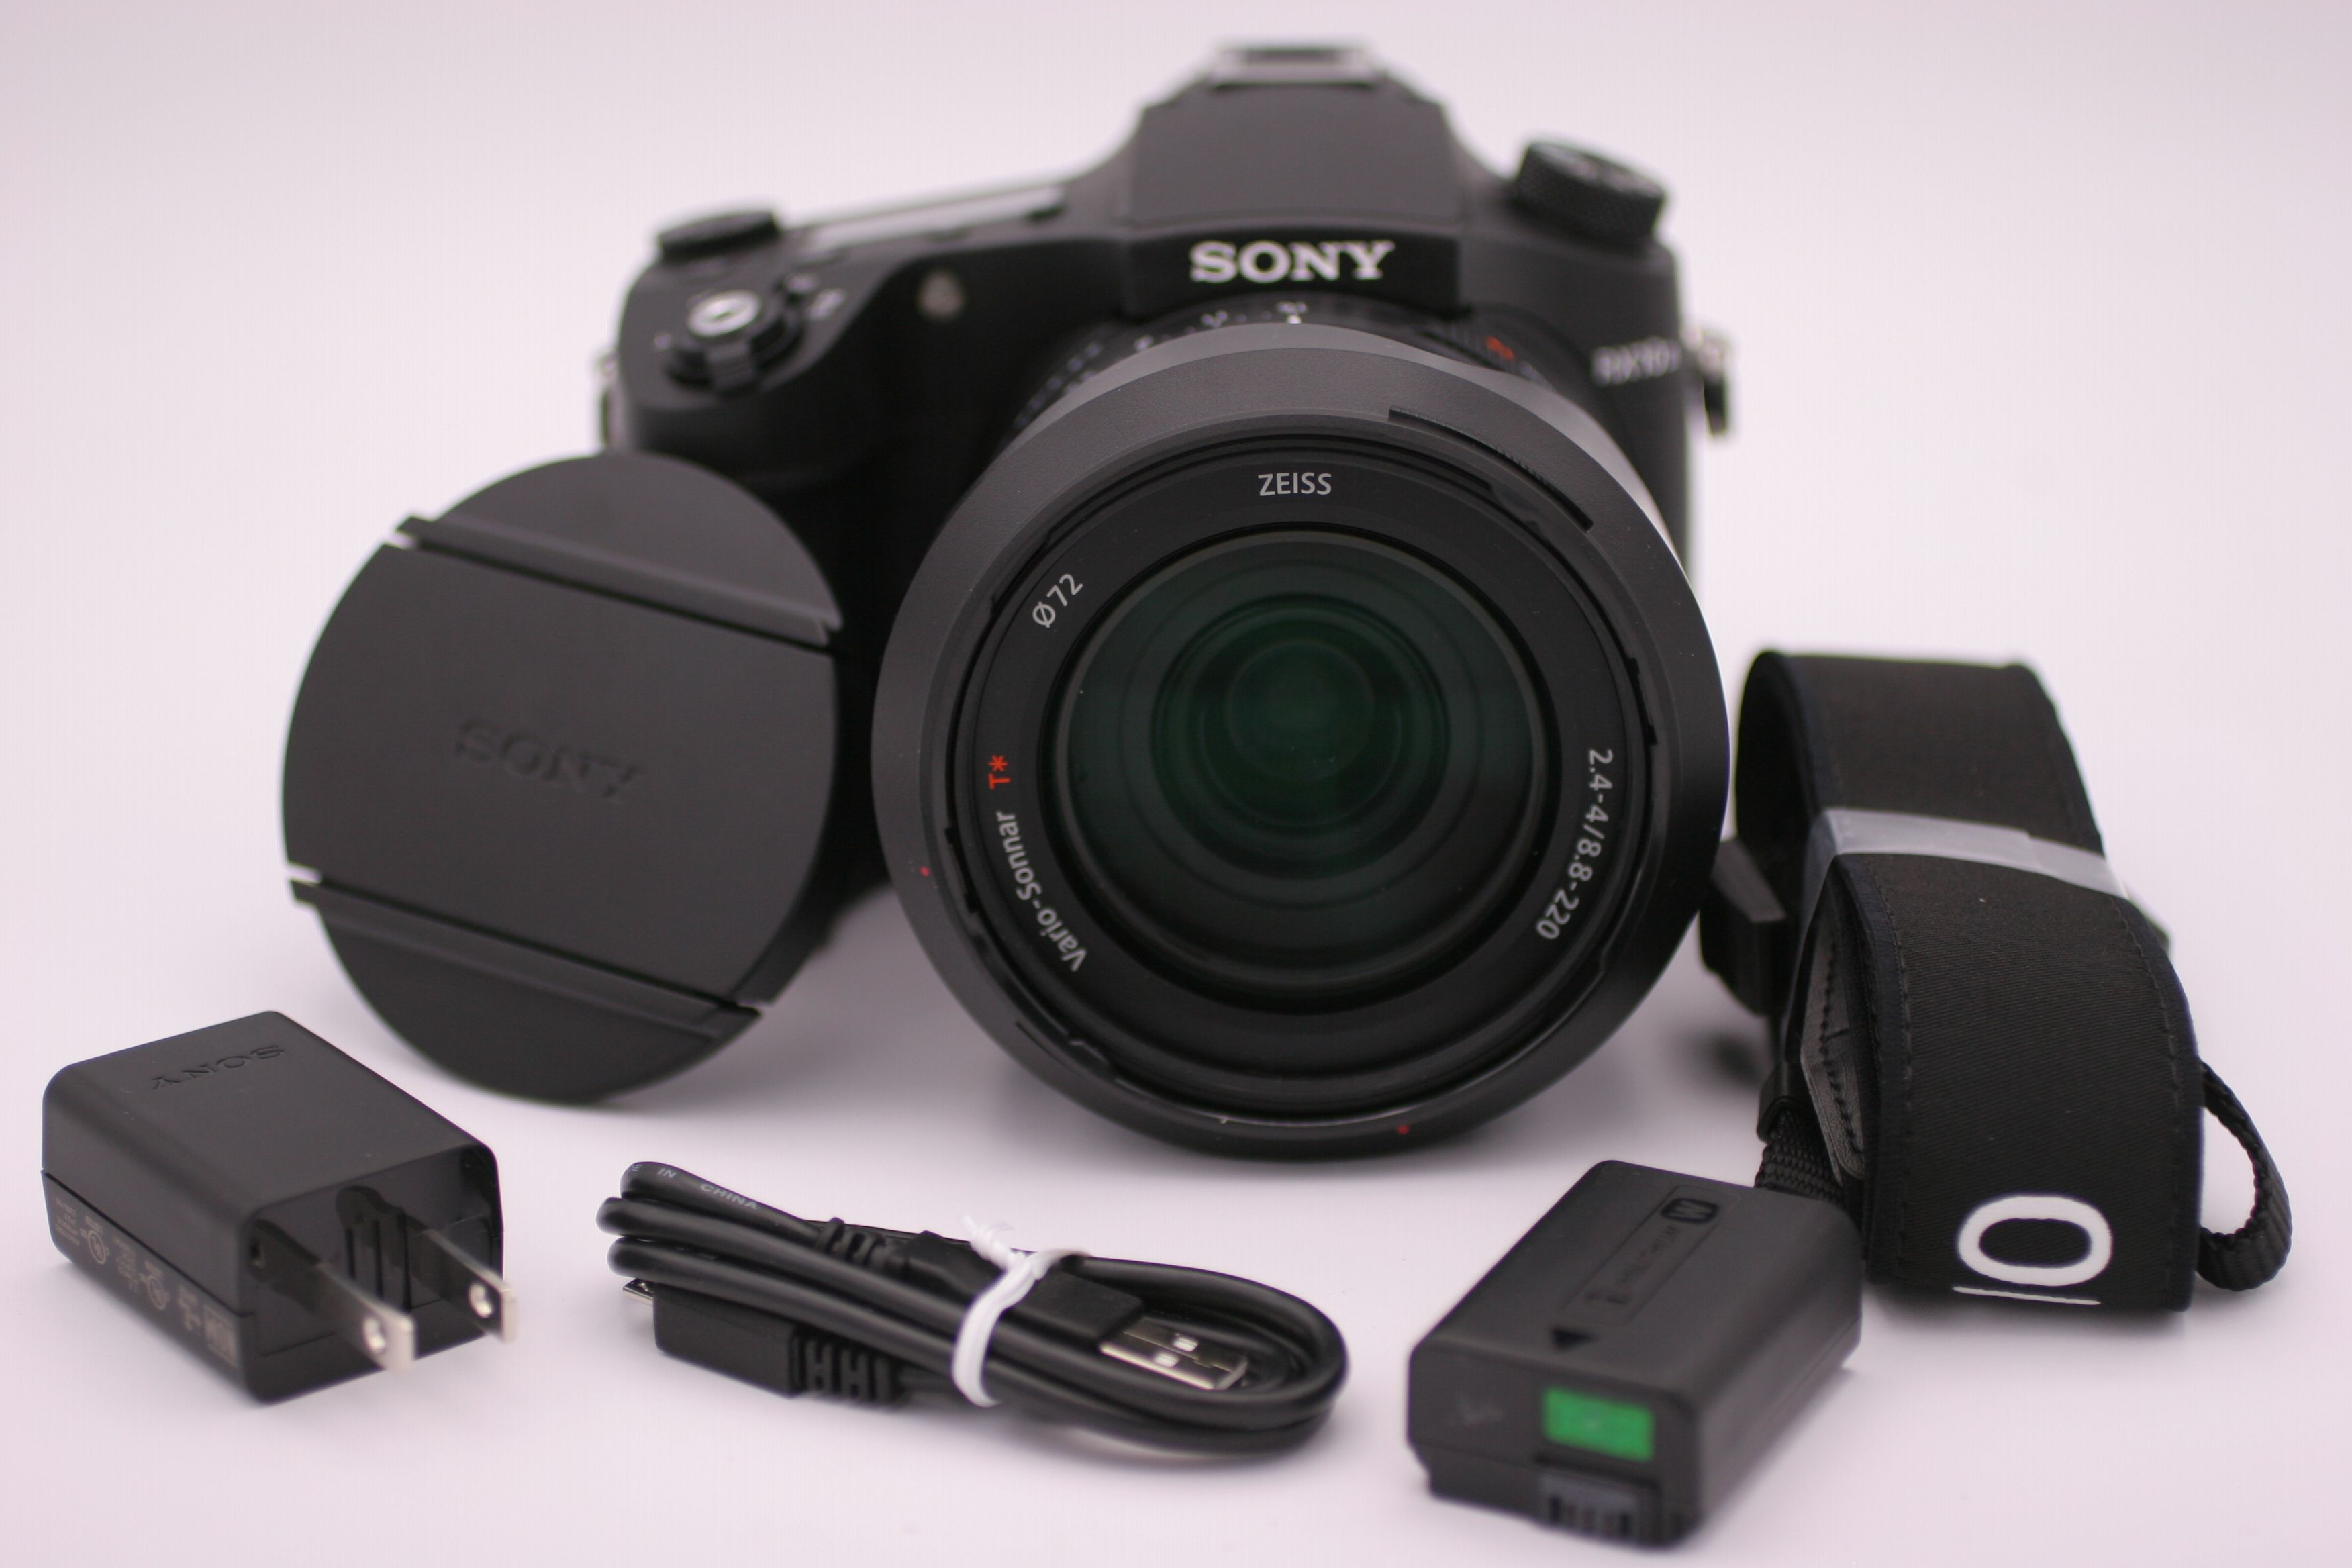 Details about Sony Cyber-shot DSC-RX10M3 RX10 III 20 1MP Digital Camera -  Black